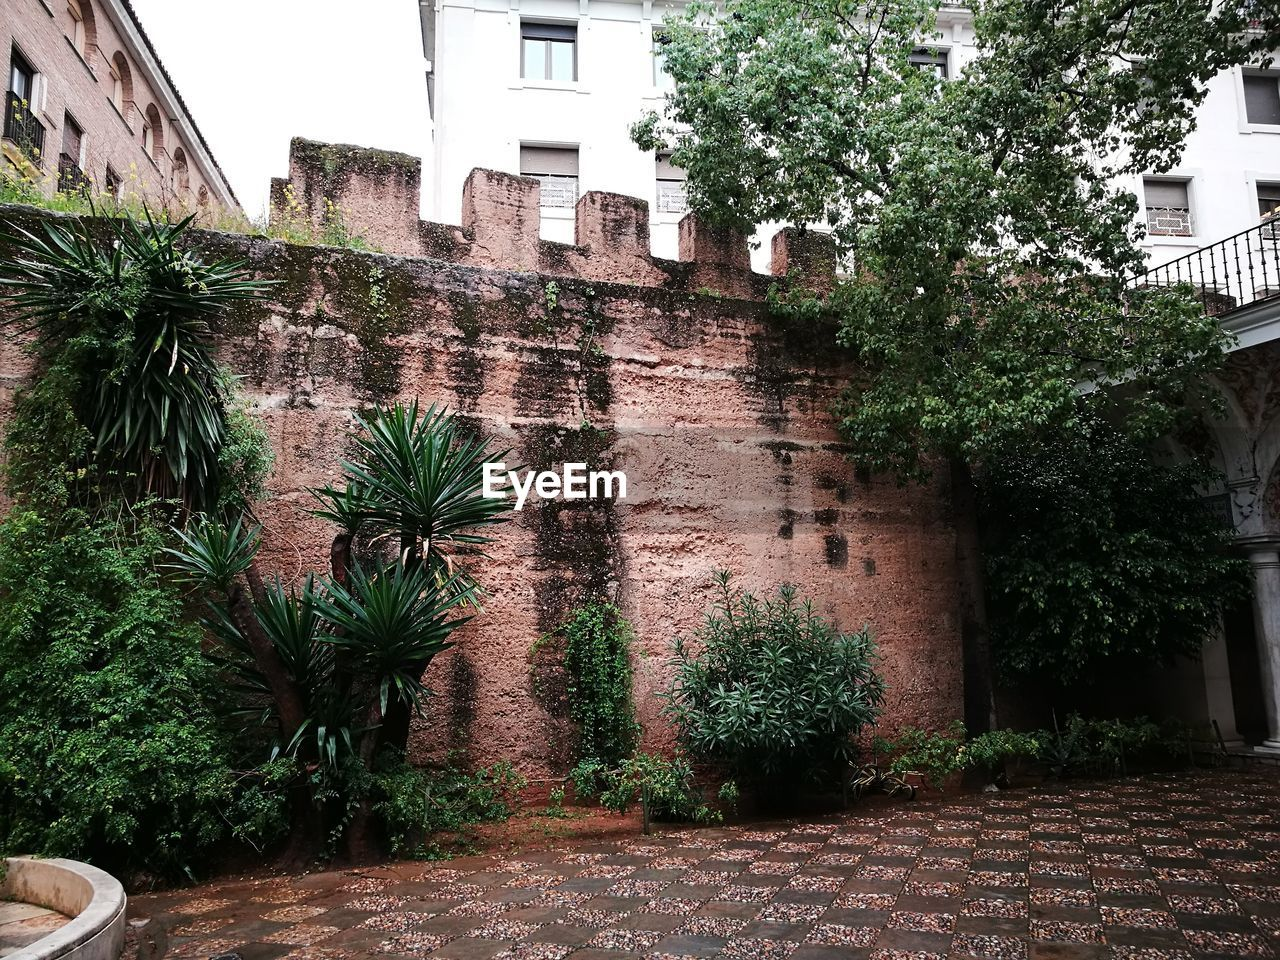 architecture, built structure, building exterior, plant, tree, growth, nature, building, tropical climate, day, no people, palm tree, outdoors, wall, residential district, city, potted plant, wall - building feature, green color, sky, courtyard